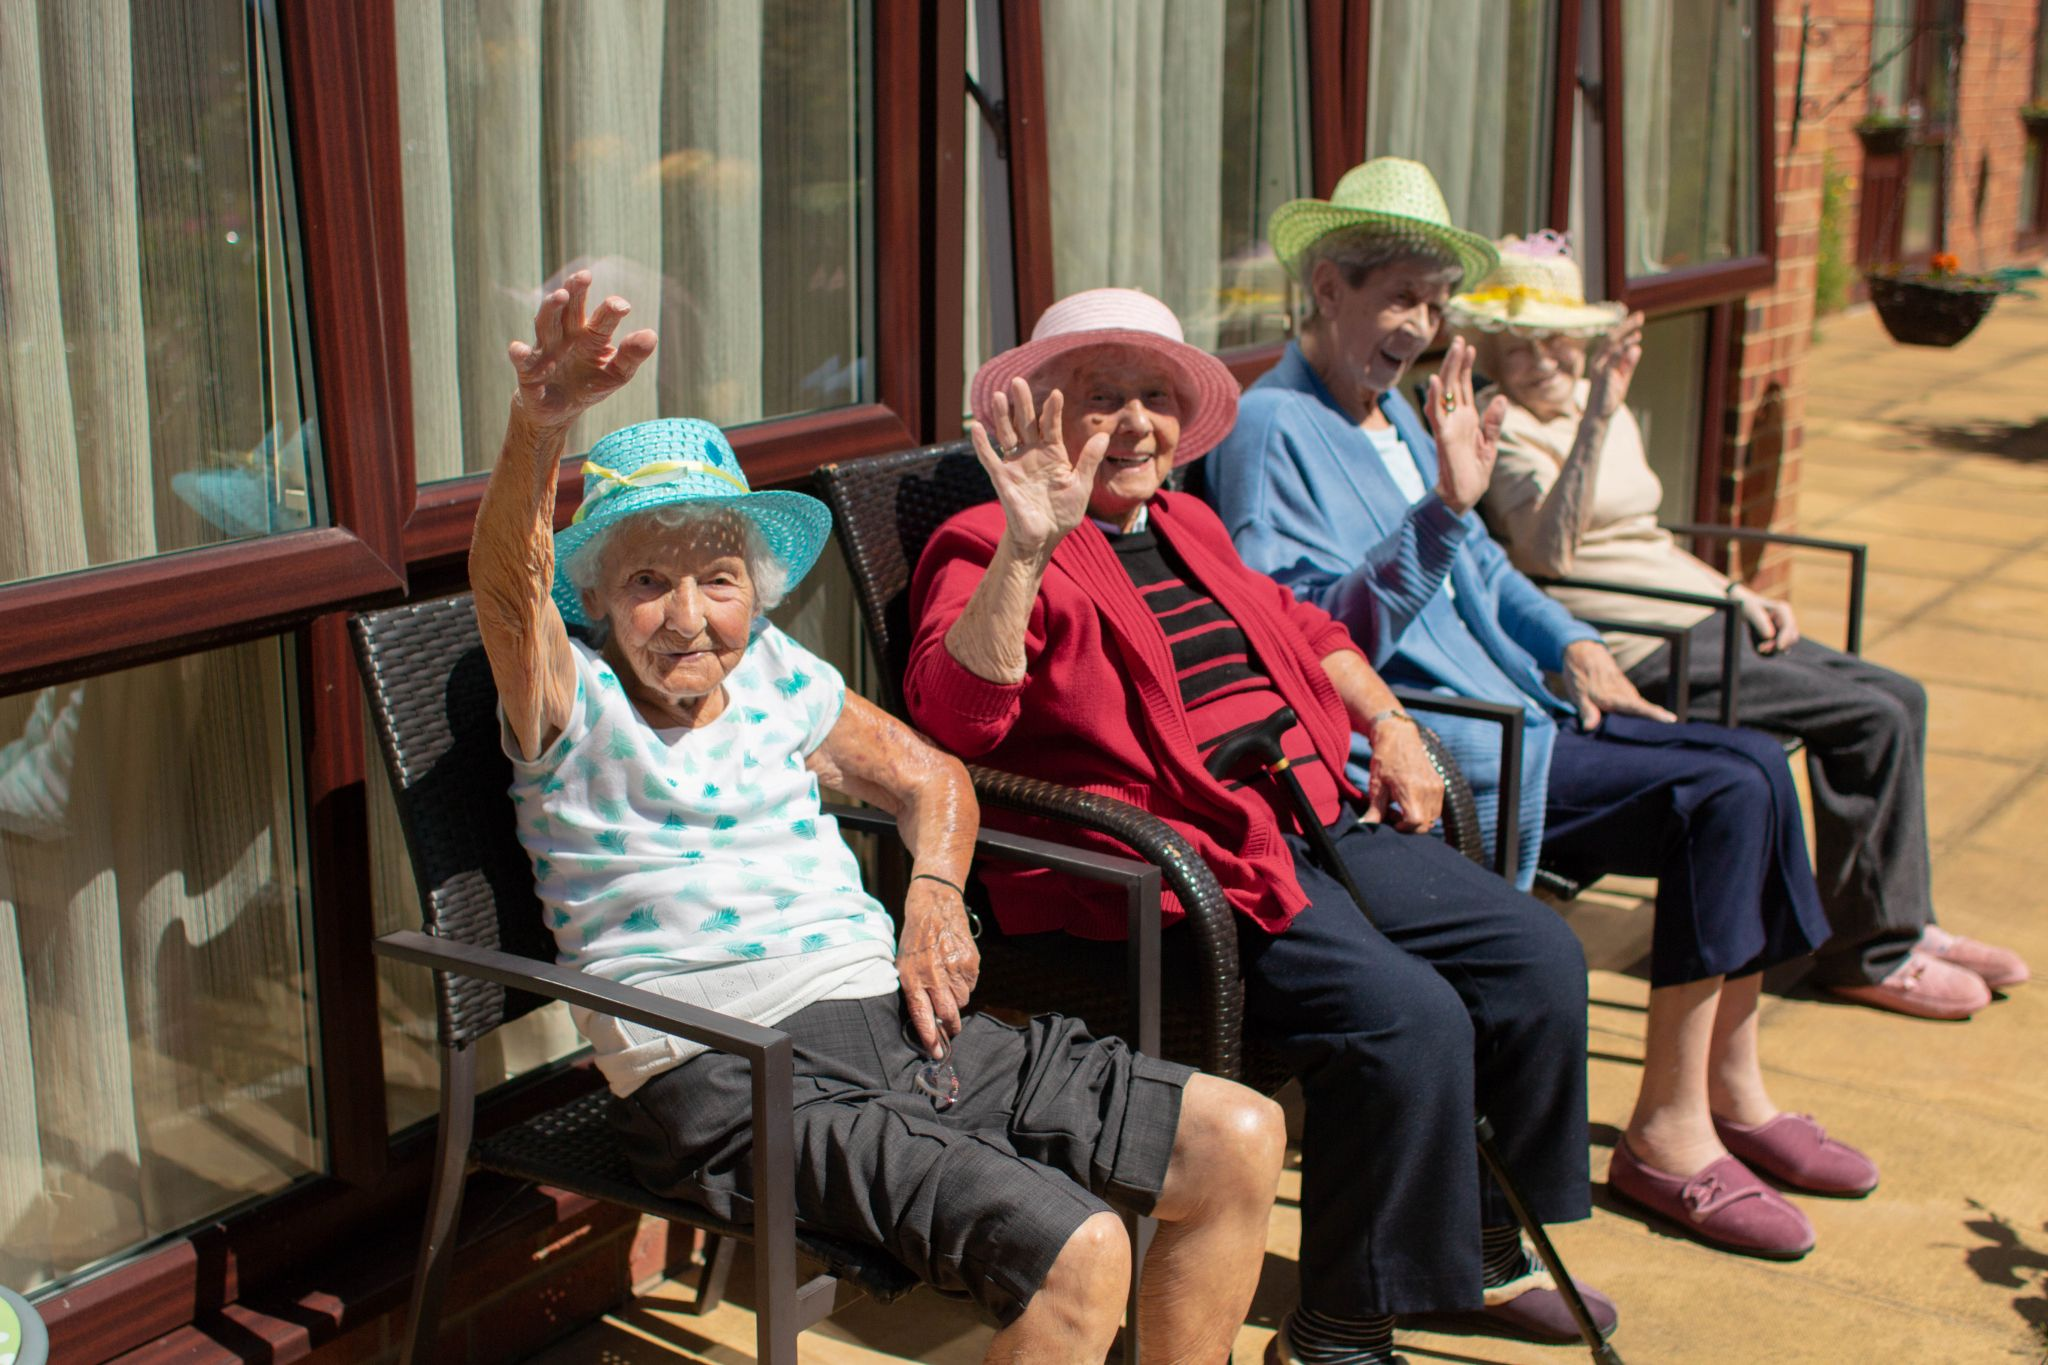 craig healthcare residents lifestyle photography hannah layford residents in sun hats